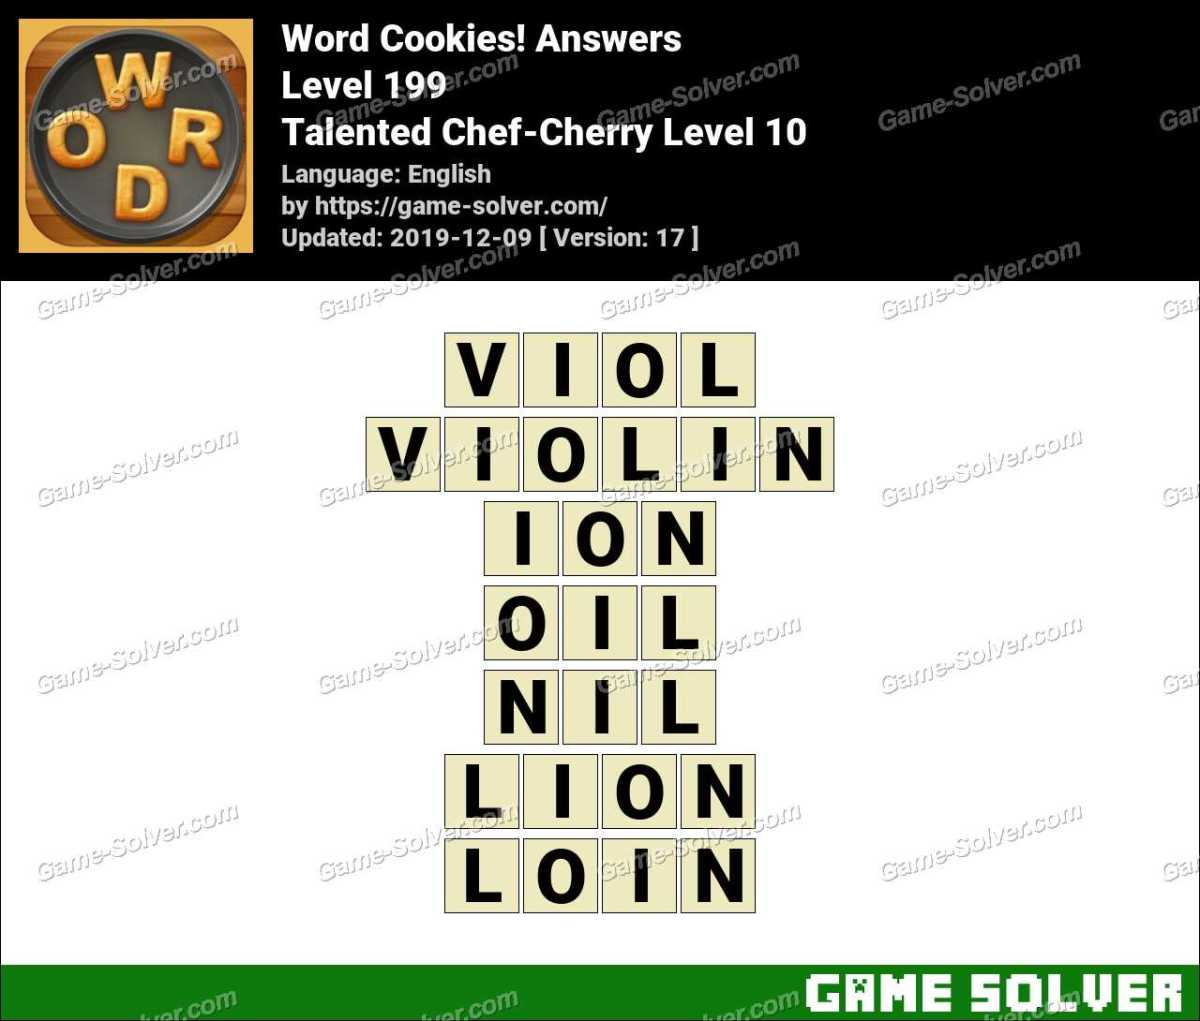 Word Cookies Talented Chef-Cherry Level 10 Answers